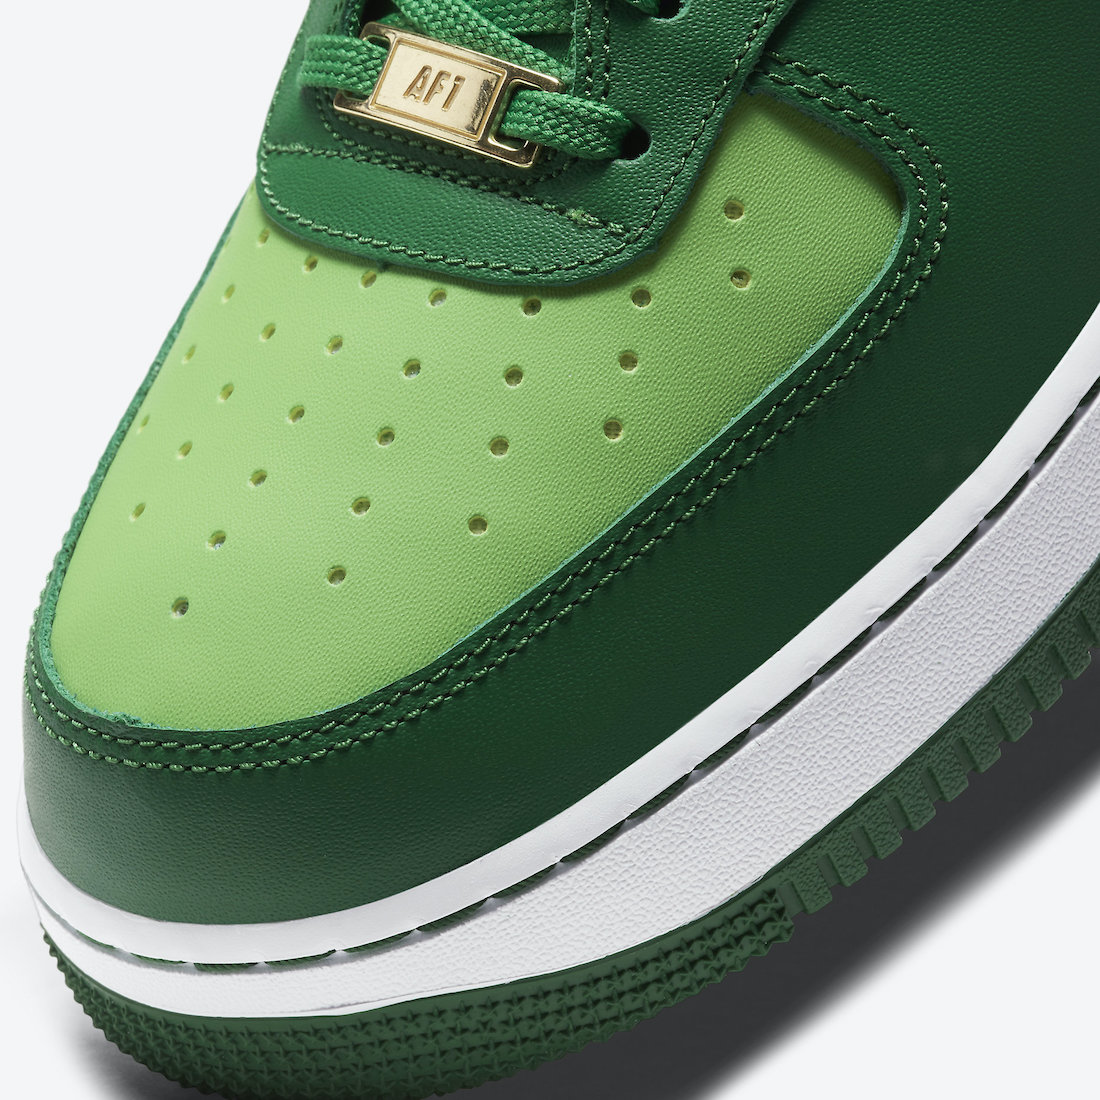 Nike Air Force 1 - St. Patrick's Day 2021